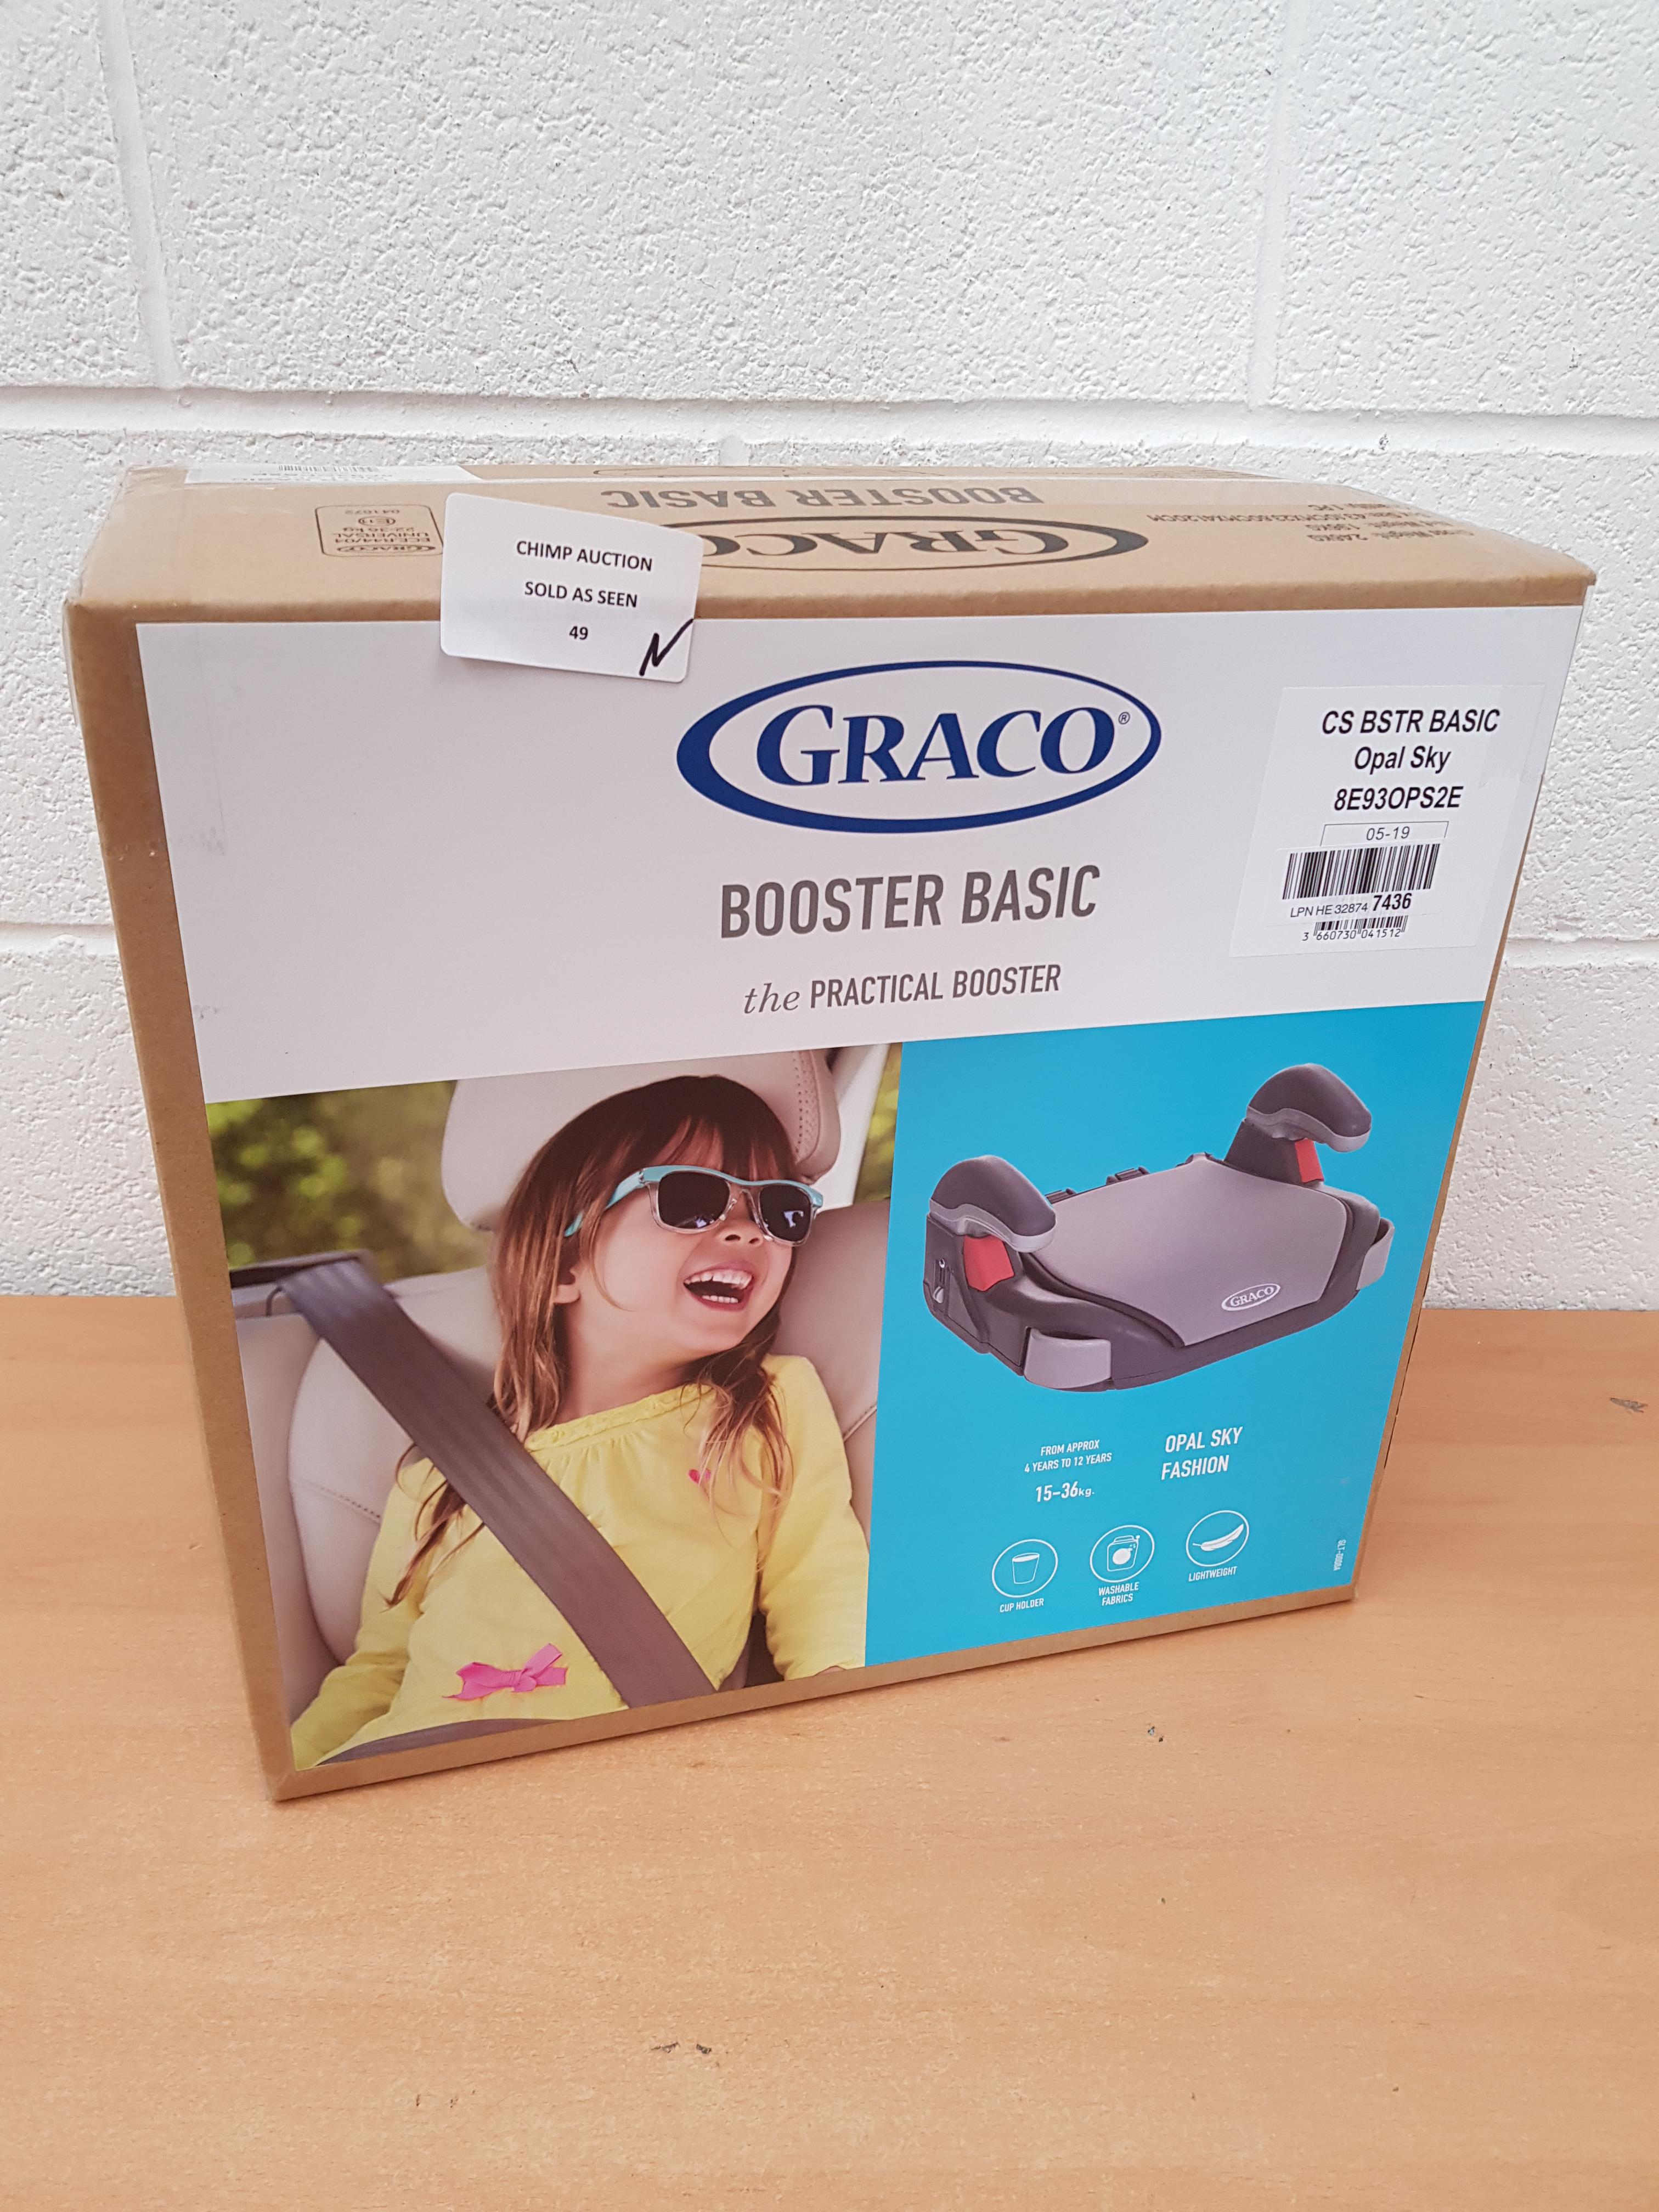 Lot 49 - Brand new Graco Booster Basic Car Seat, Group 3